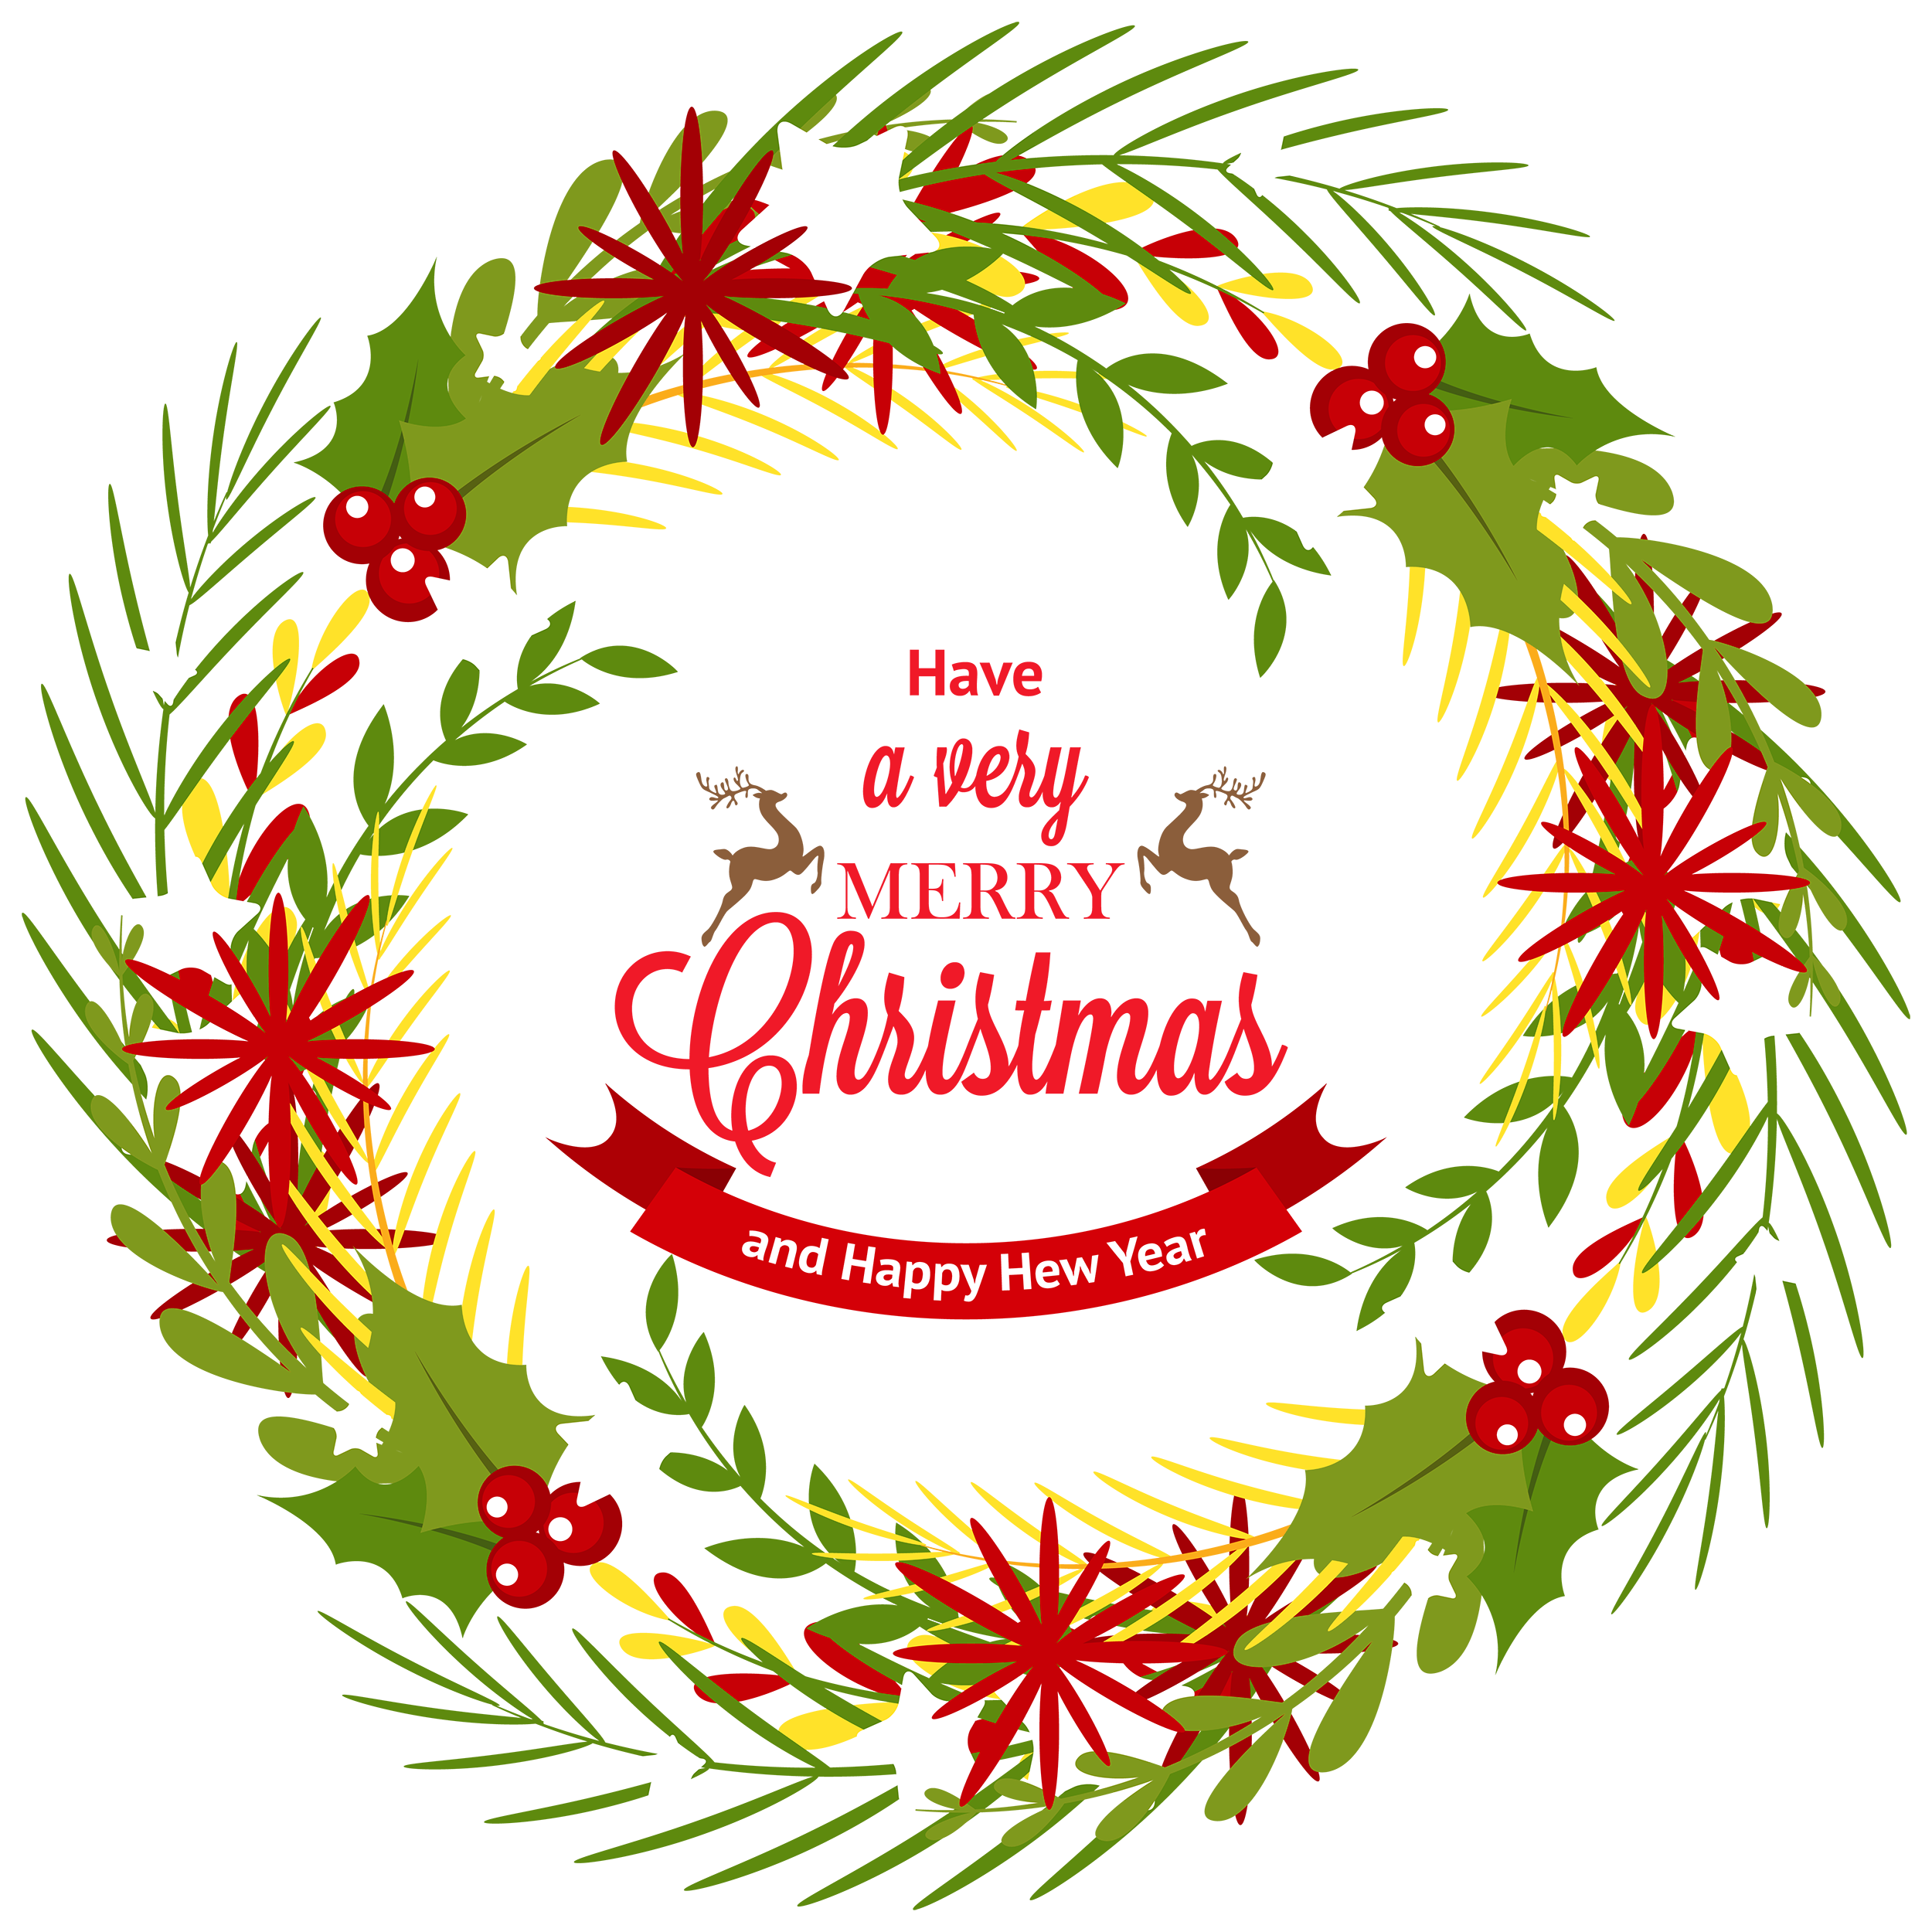 clip transparent download Wreath with png best. Mistletoe clipart merry christmas.